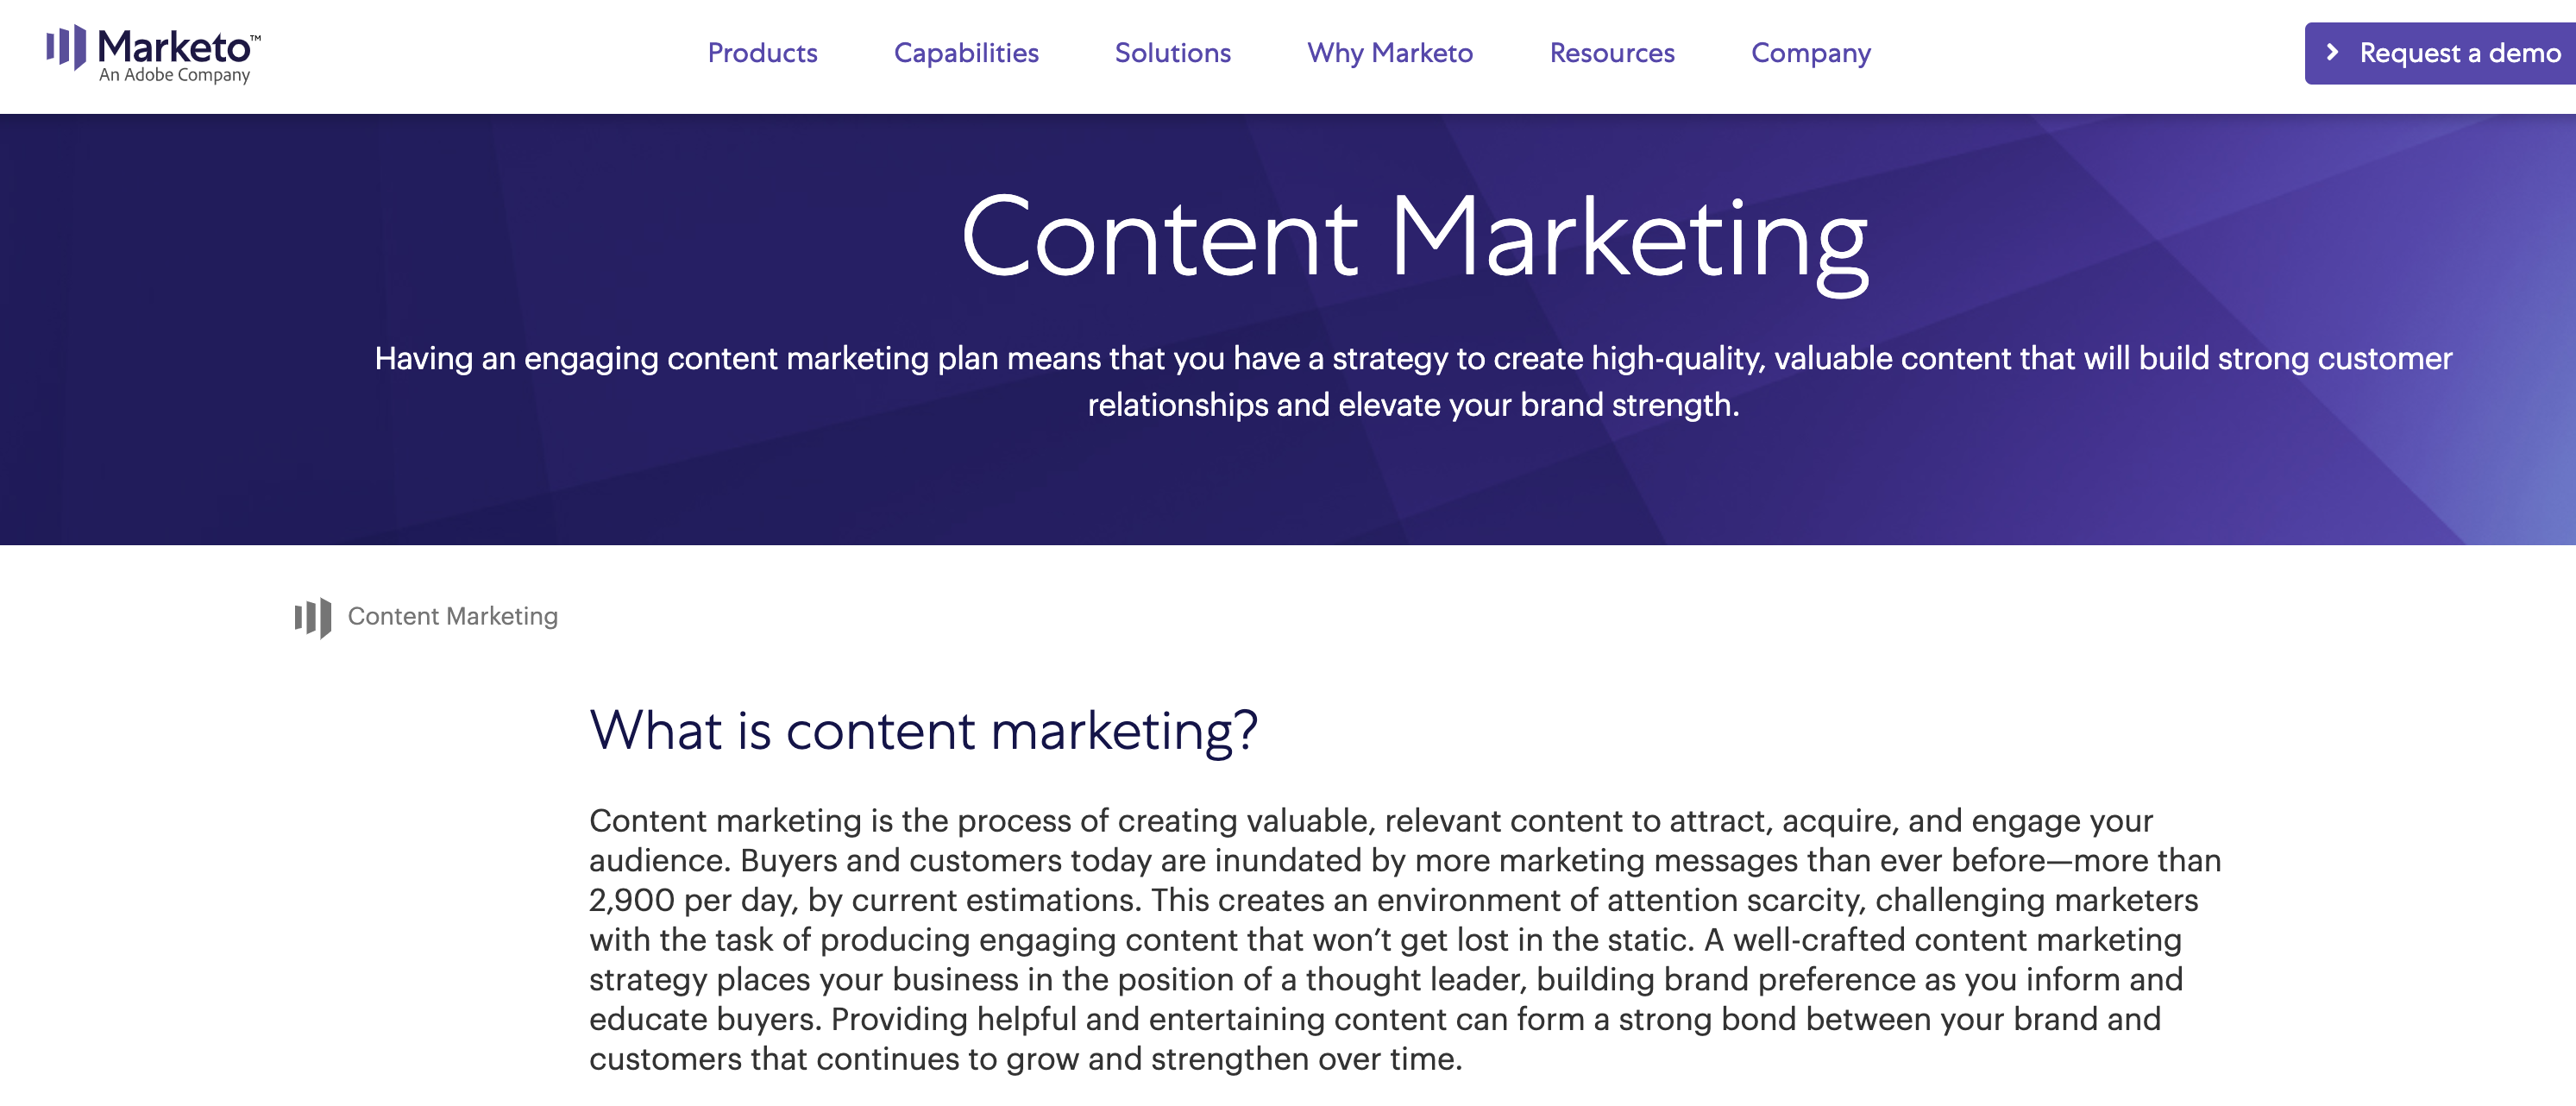 marketo content marketing definition